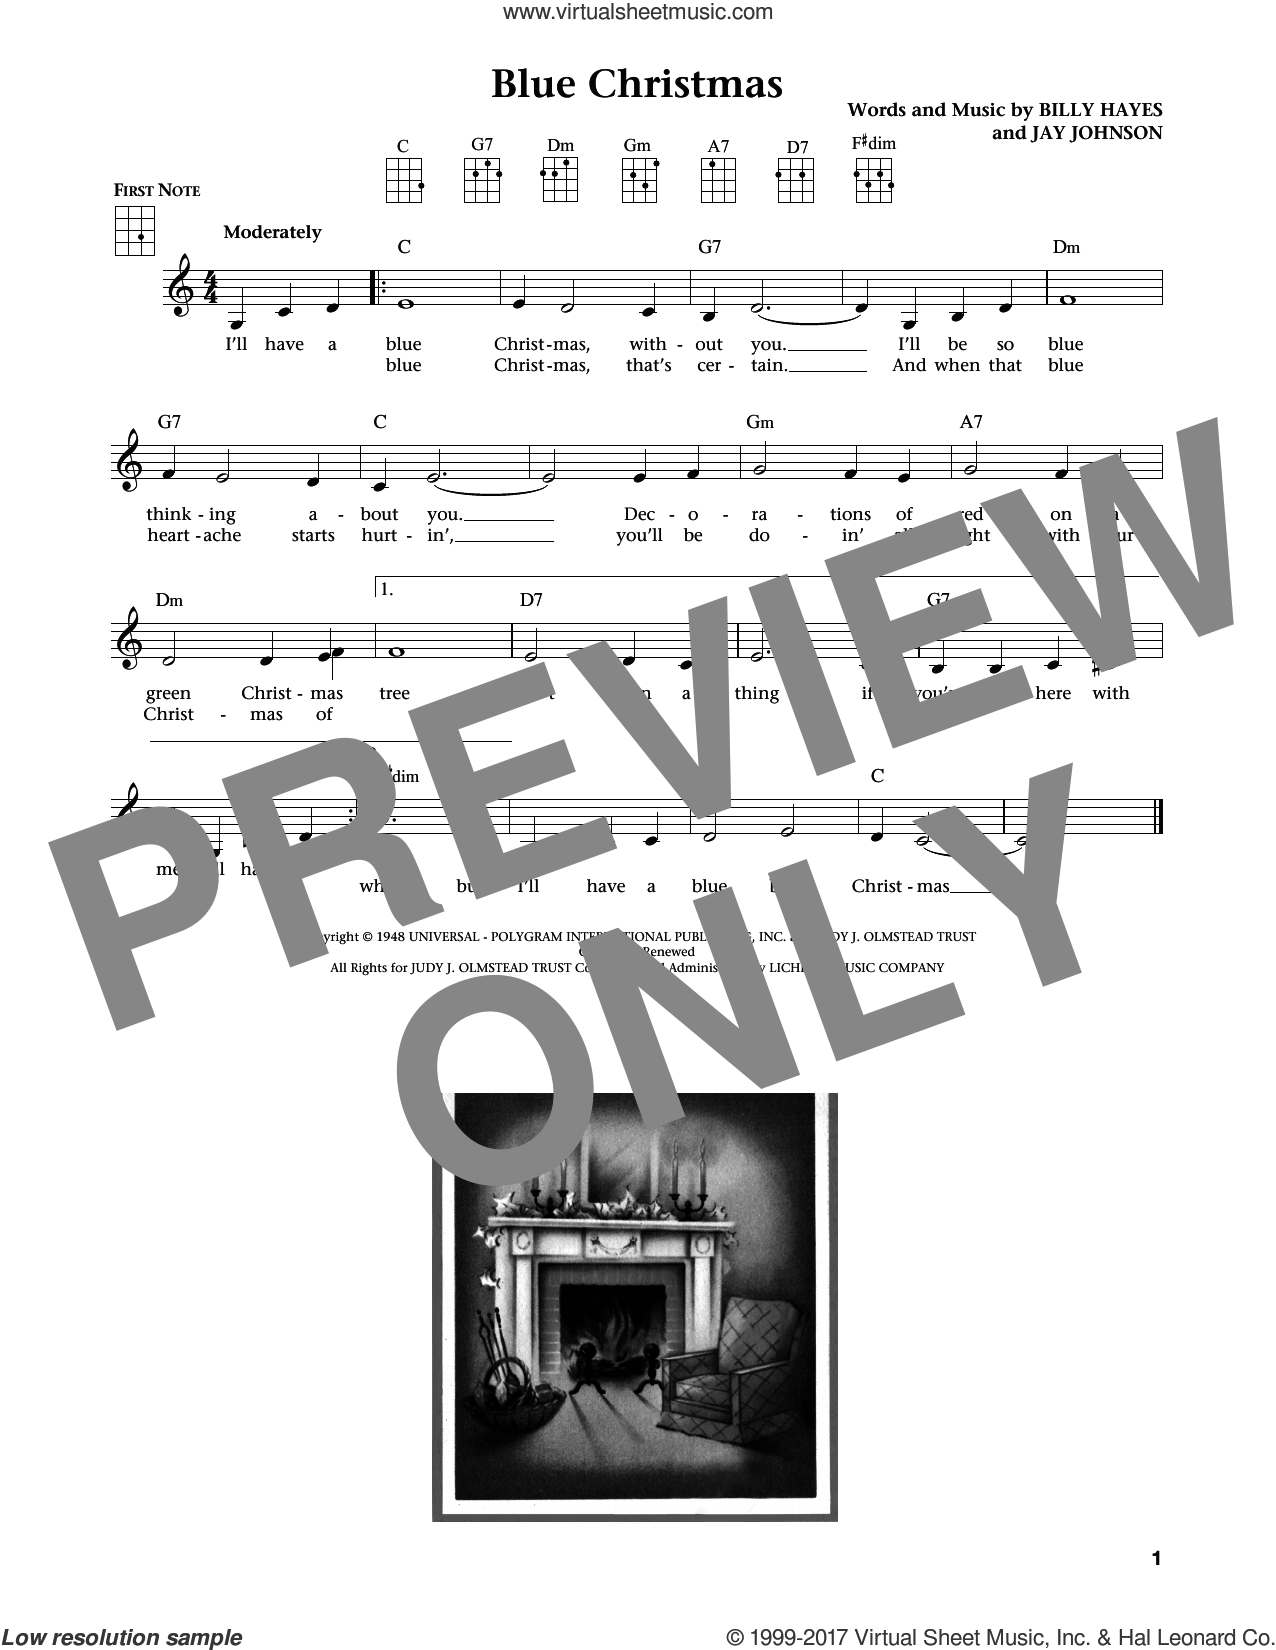 Blue Christmas (from The Daily Ukulele) (arr. Liz and Jim Beloff) sheet music for ukulele by Elvis Presley, Jim Beloff, Liz Beloff and Billy Hayes, intermediate skill level